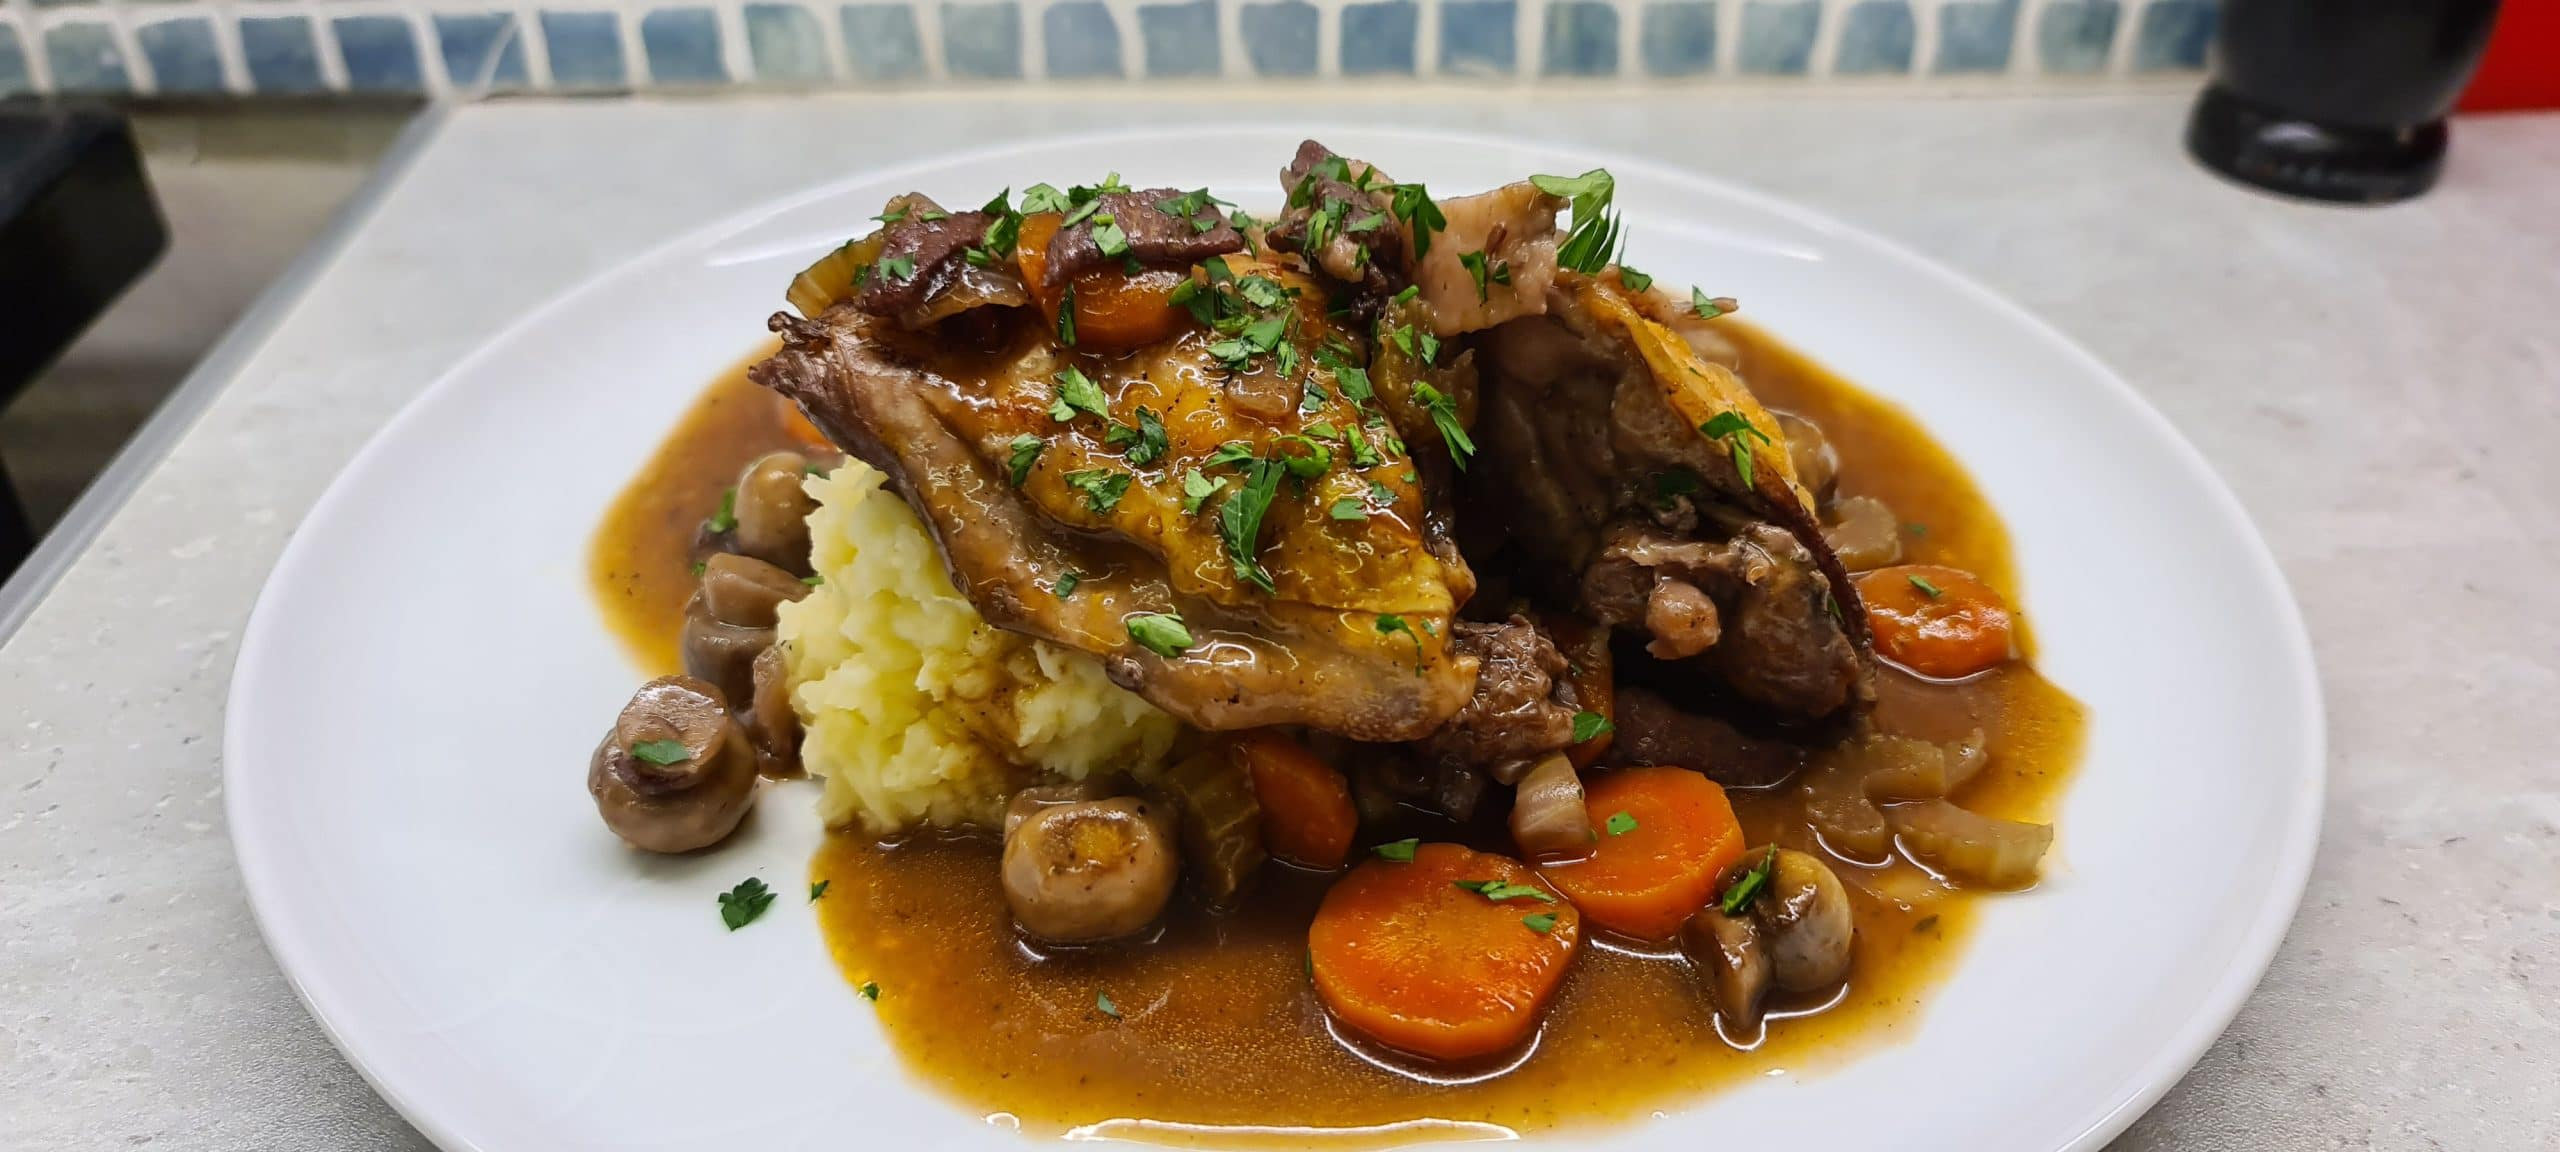 You are currently viewing Easy Coq au Vin with Potato and Celeriac Mash